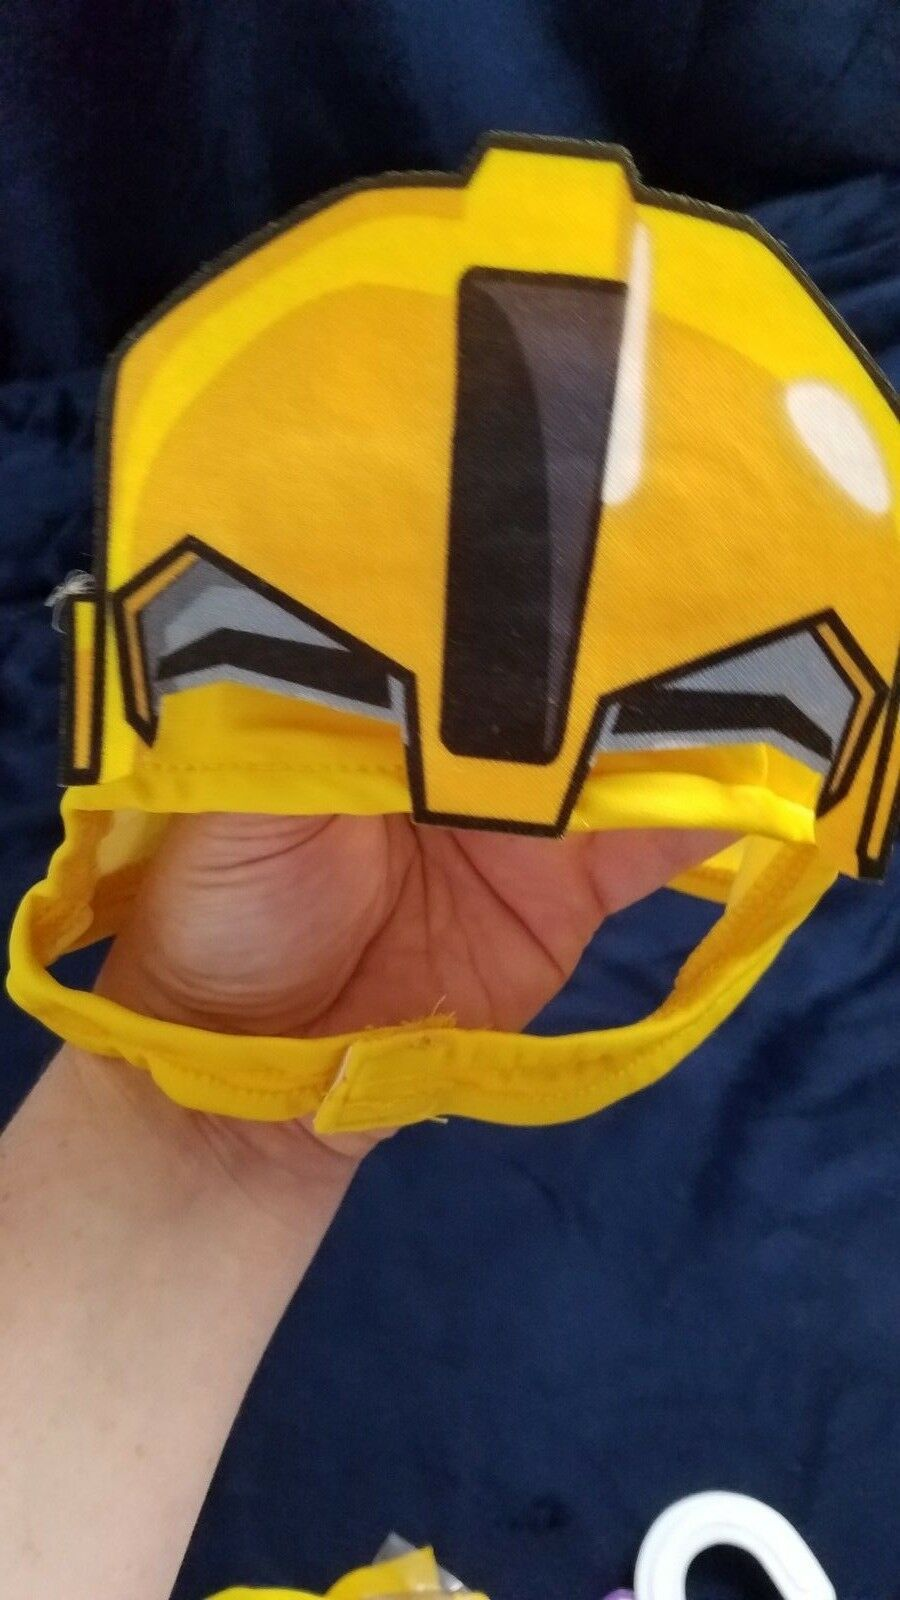 Bumblebee Transformers Pet Dog Costume Small Or Large Rubie's Brand Black Yellow image 5